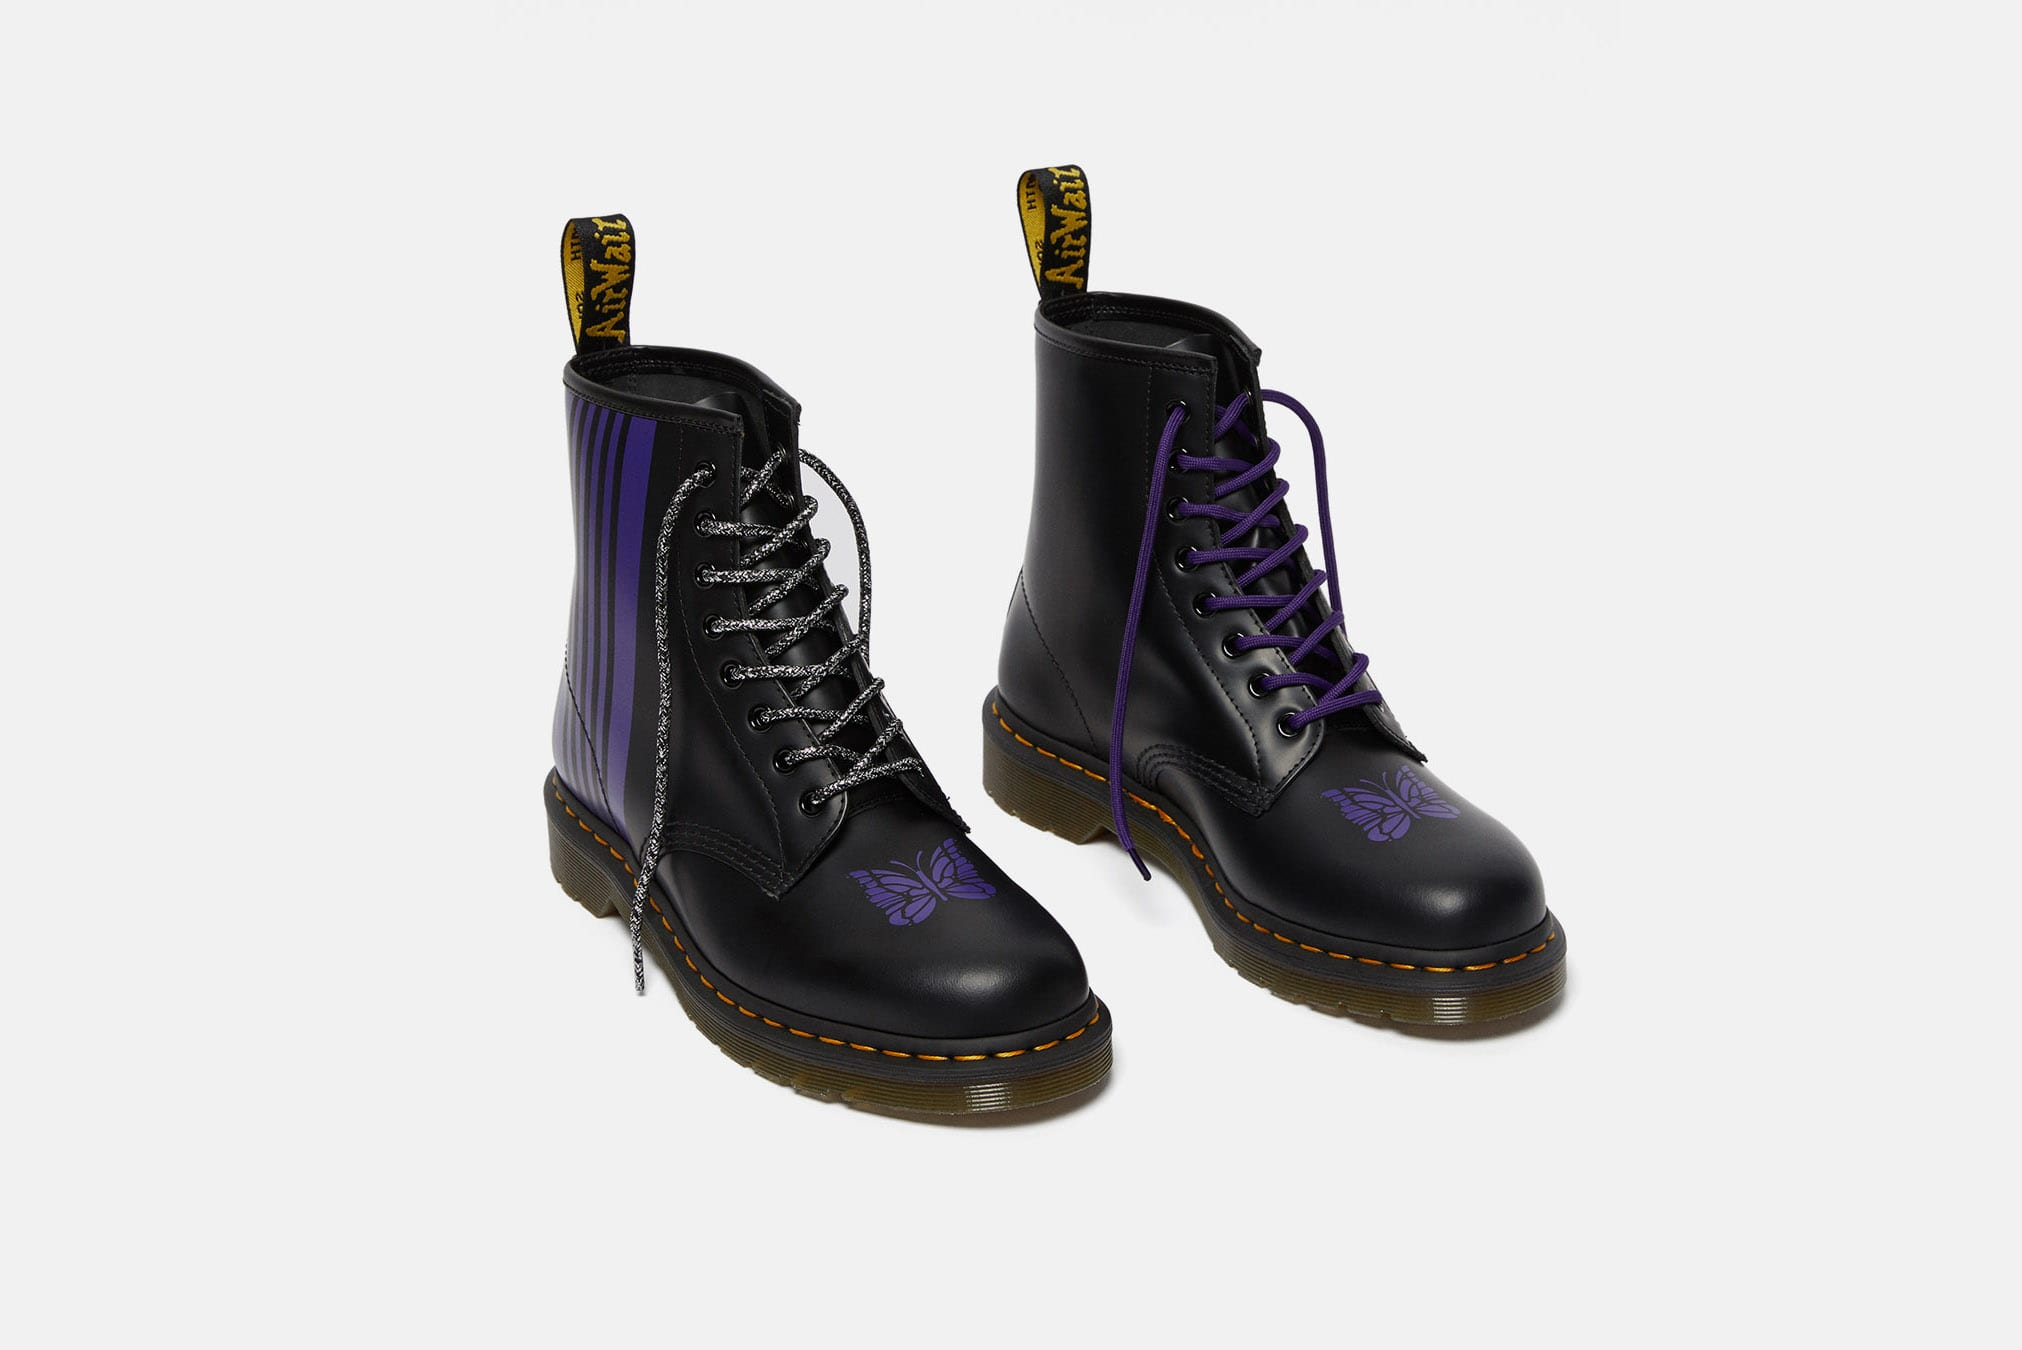 Dr. Martens x Needles 1460 Remastered Boot - 26258011